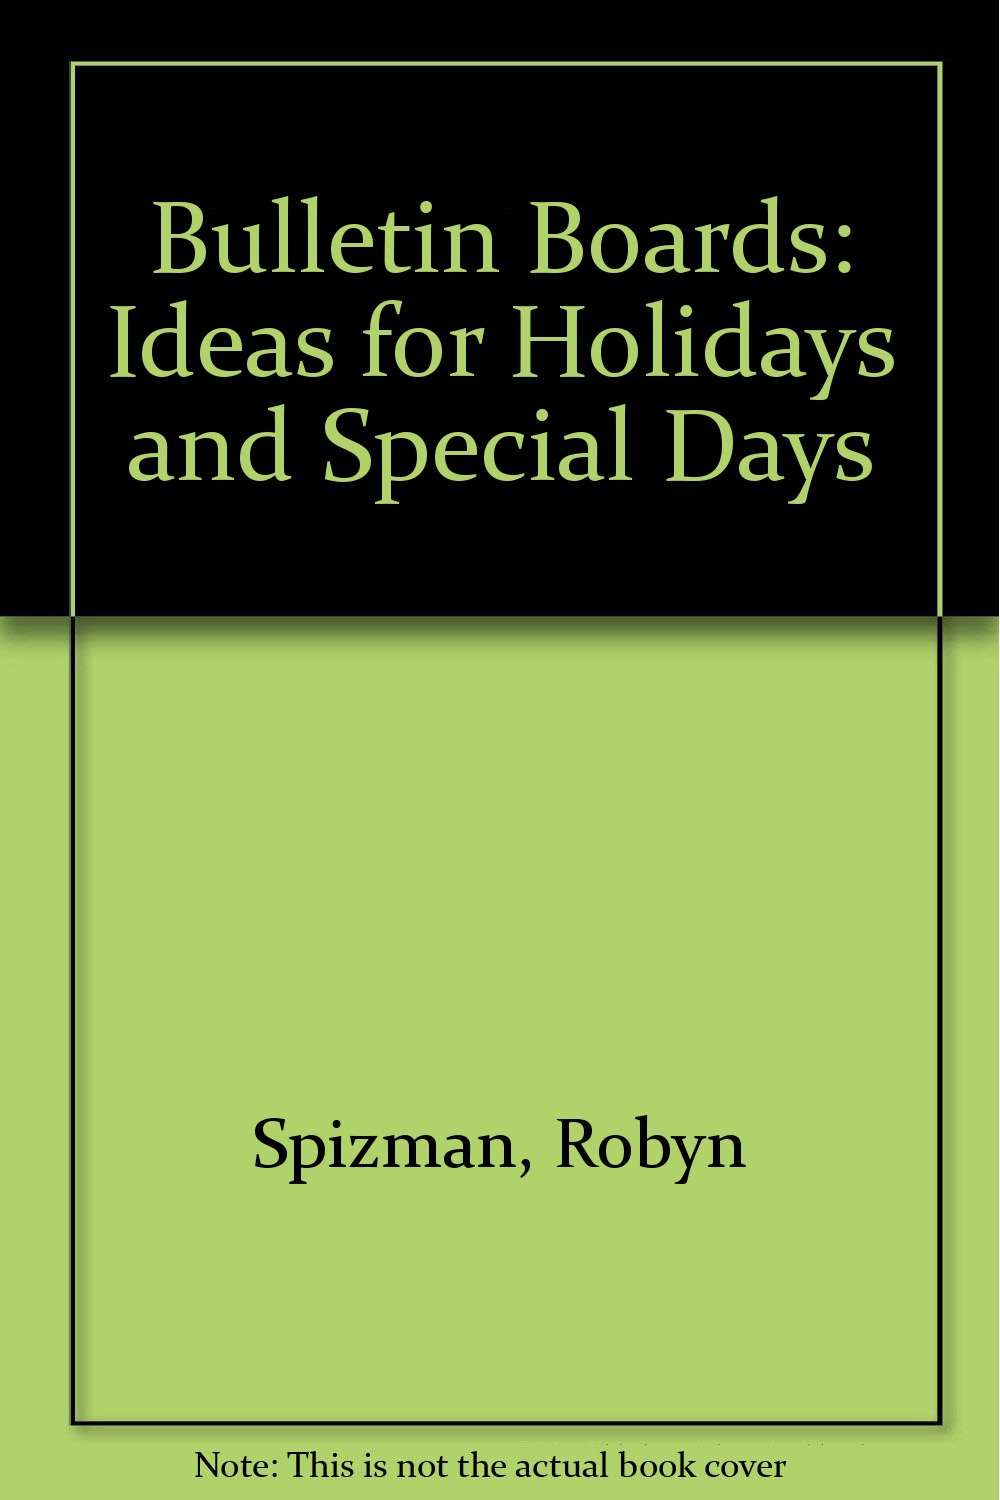 Bulletin Boards: Ideas for Holidays and Special Days: Robyn Spizman:  9780866532112: Amazon.com: Books